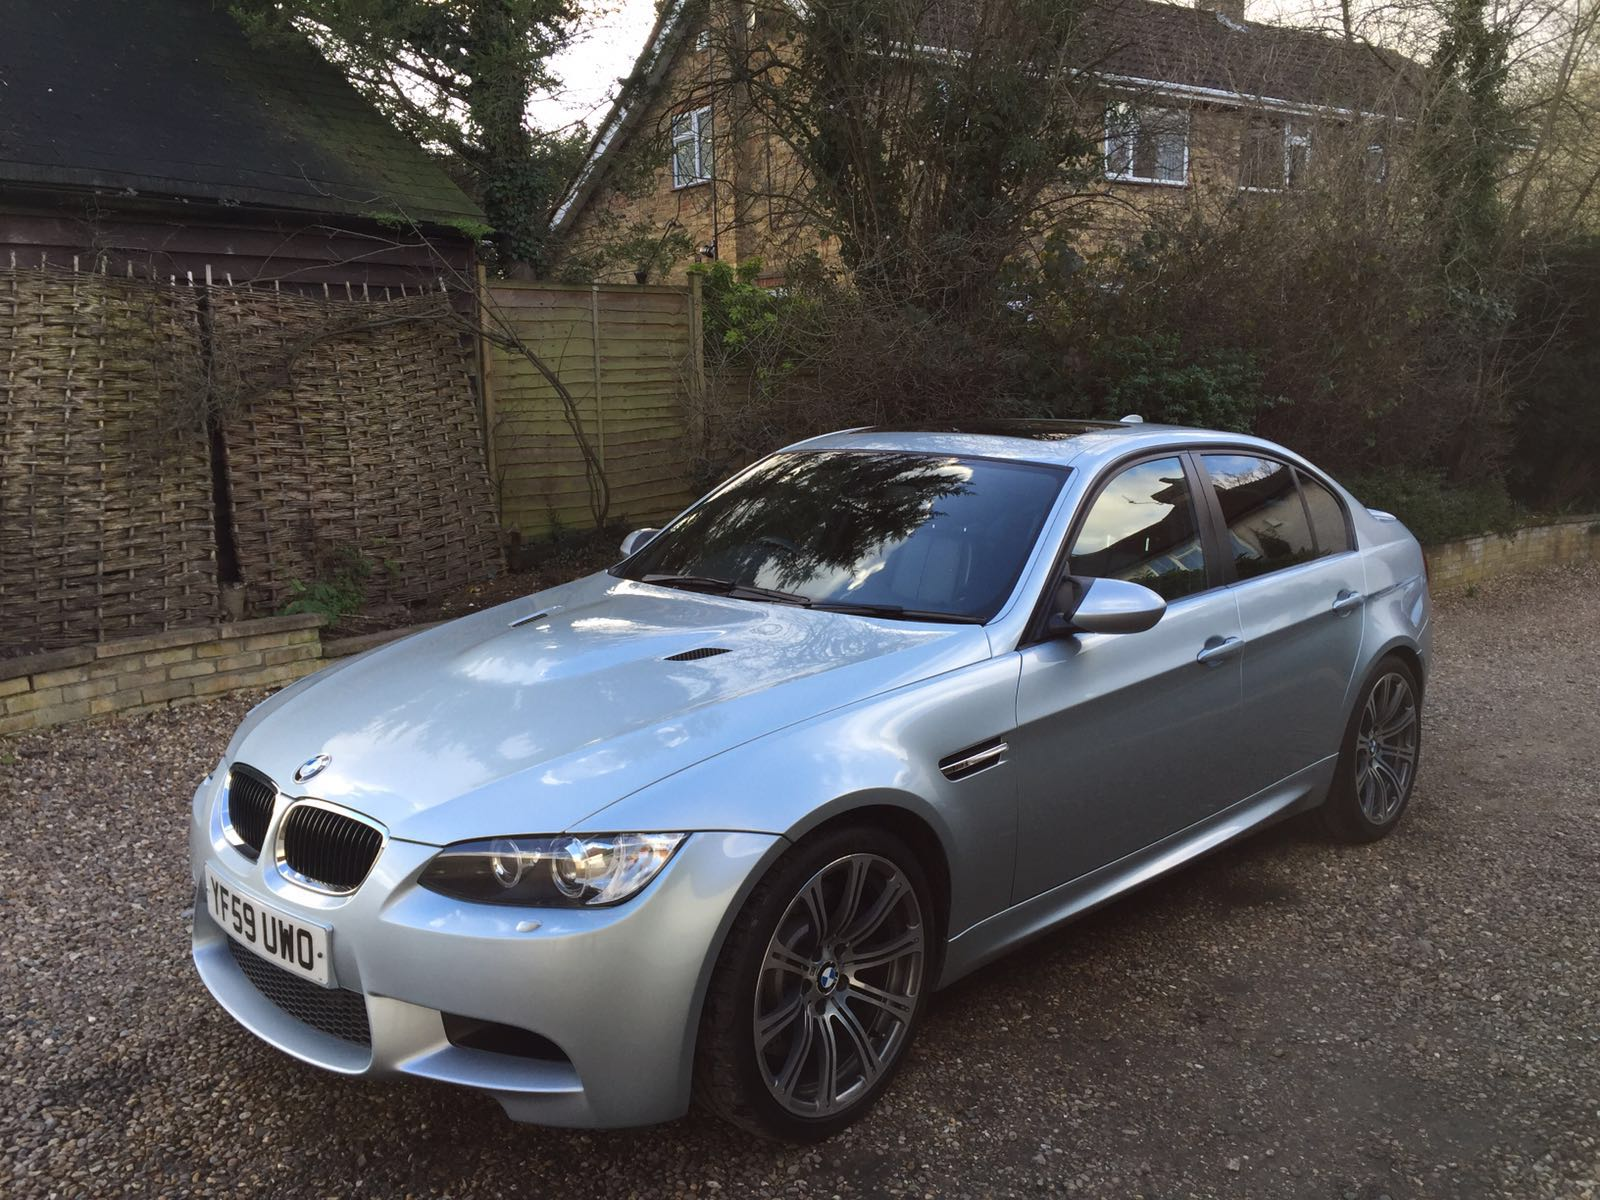 bmw m3 4 0l v8 saloon manual gs vehicle servcies. Black Bedroom Furniture Sets. Home Design Ideas